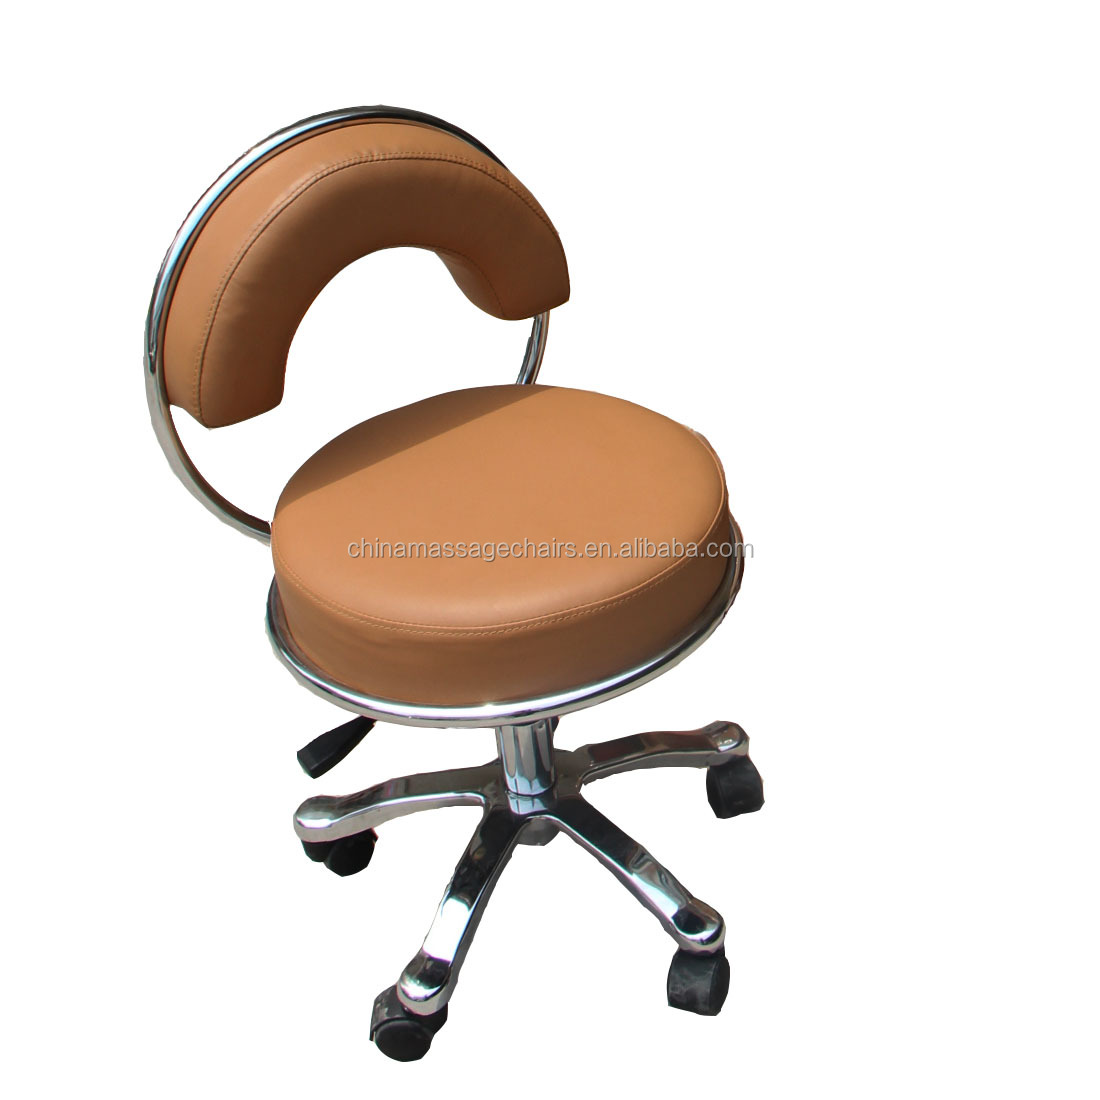 Electric massage chair sk 1001a china massage chairs massager - Foot Massage Stool Foot Massage Stool Suppliers And Manufacturers At Alibaba Com